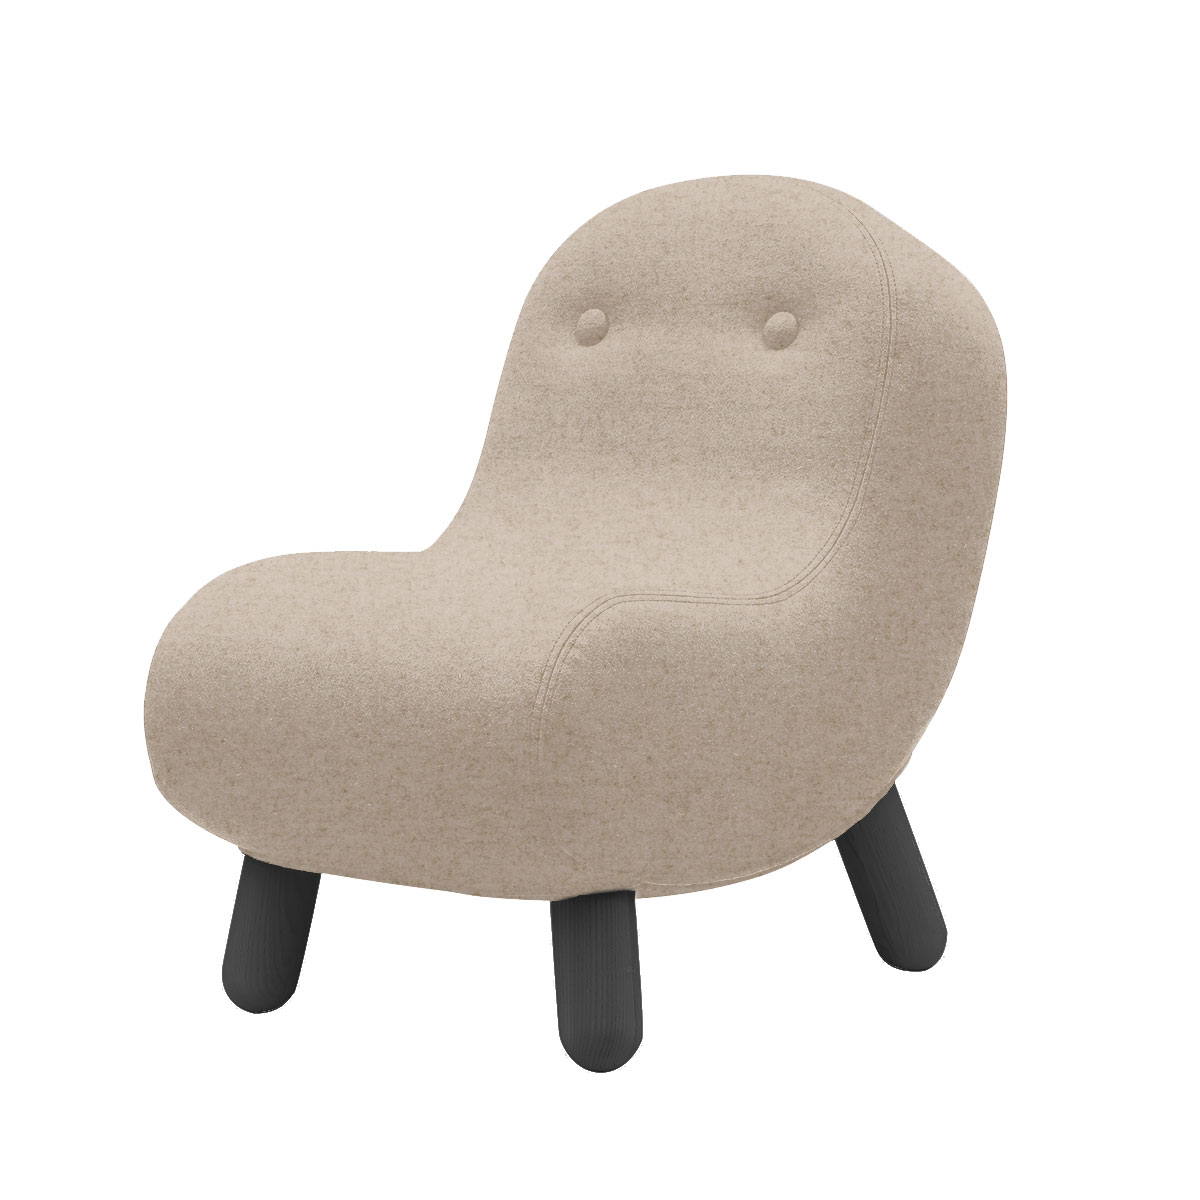 Softline Bob Lounge Chair by Andreas Lund